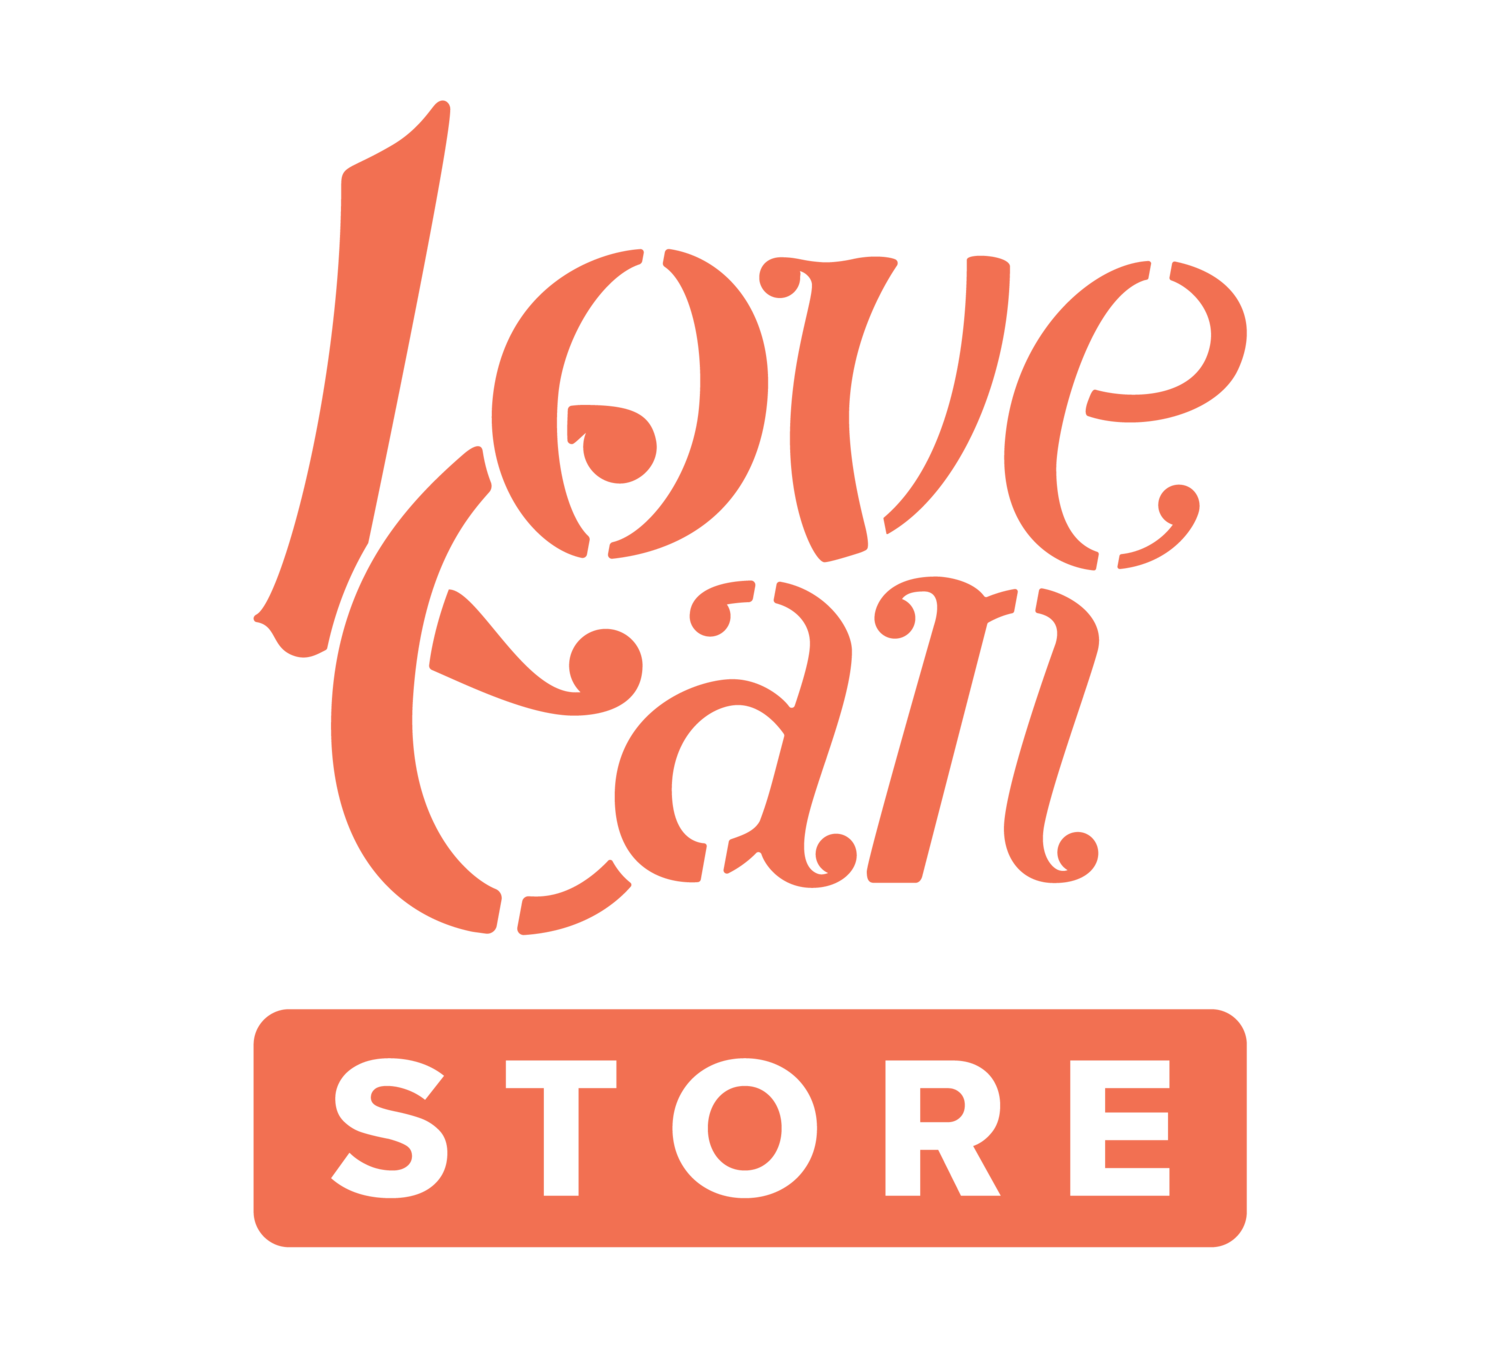 Love Can Store